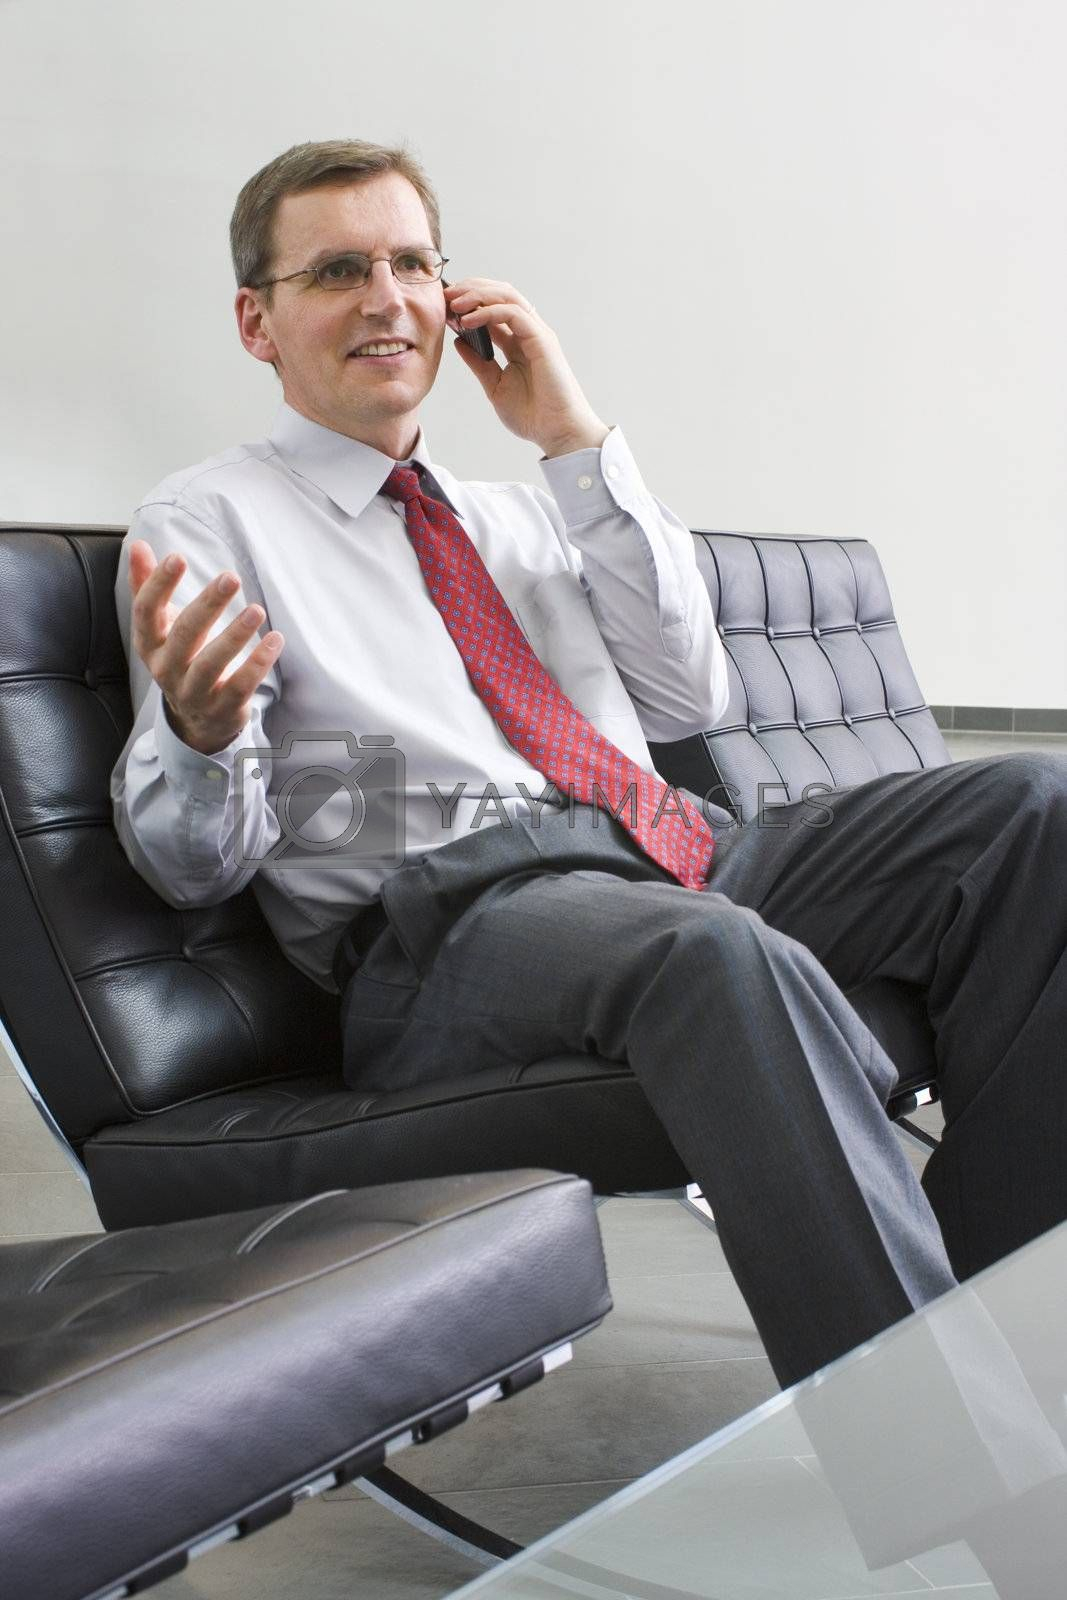 Businessman or politician talking on cell phone while sitting in a chair of leather